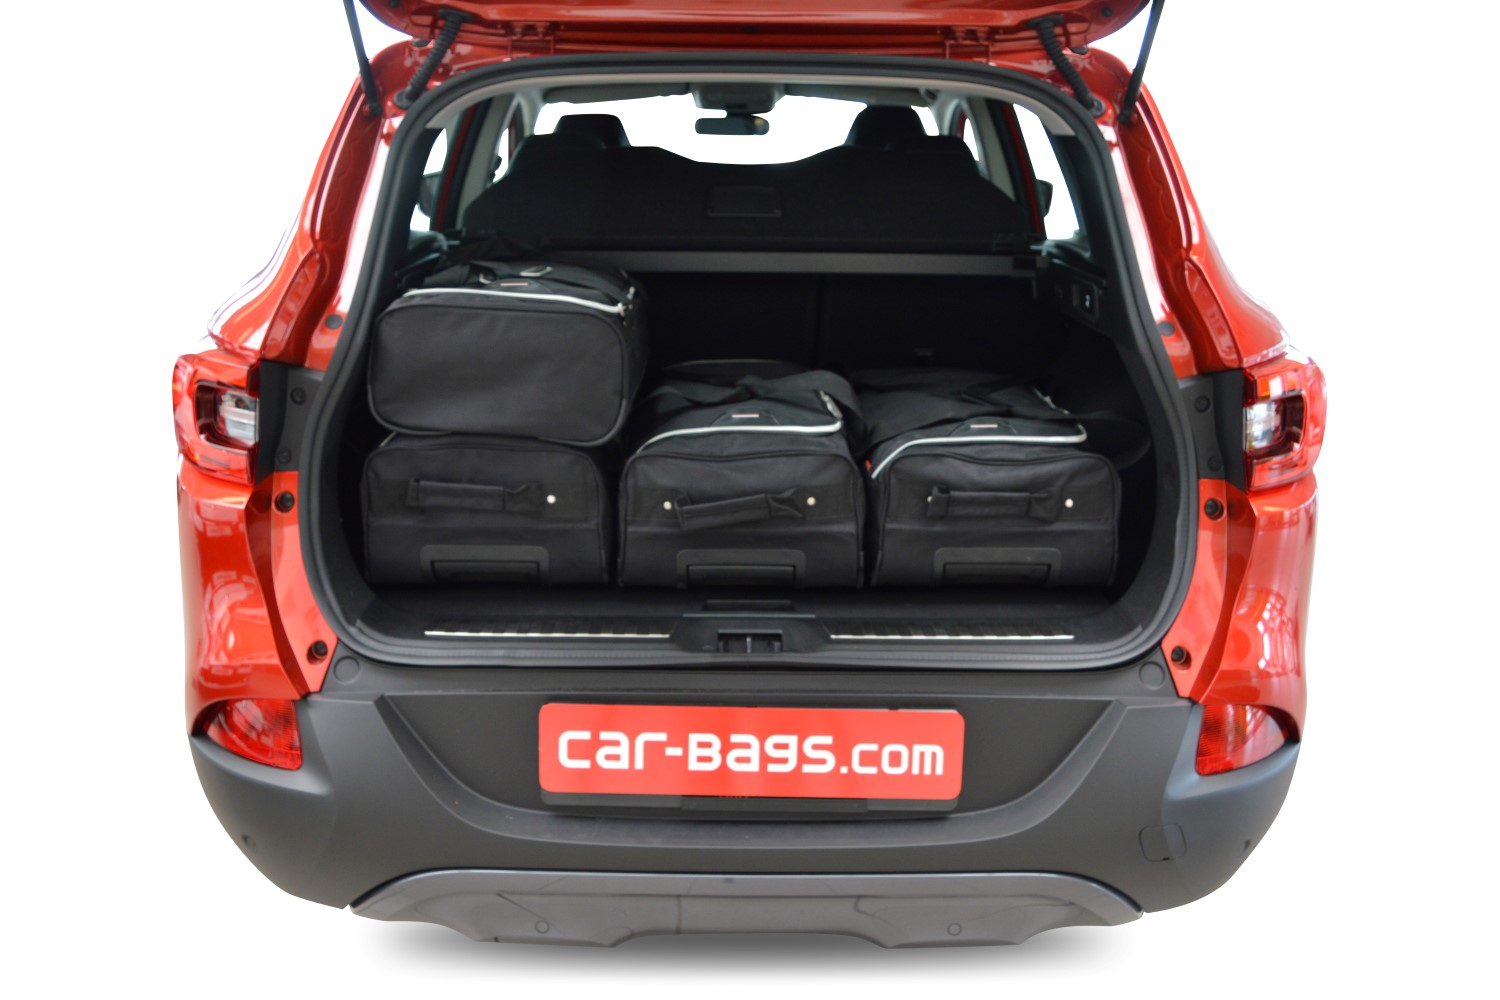 kadjar renault kadjar 2015 heute car bags reisetaschen. Black Bedroom Furniture Sets. Home Design Ideas